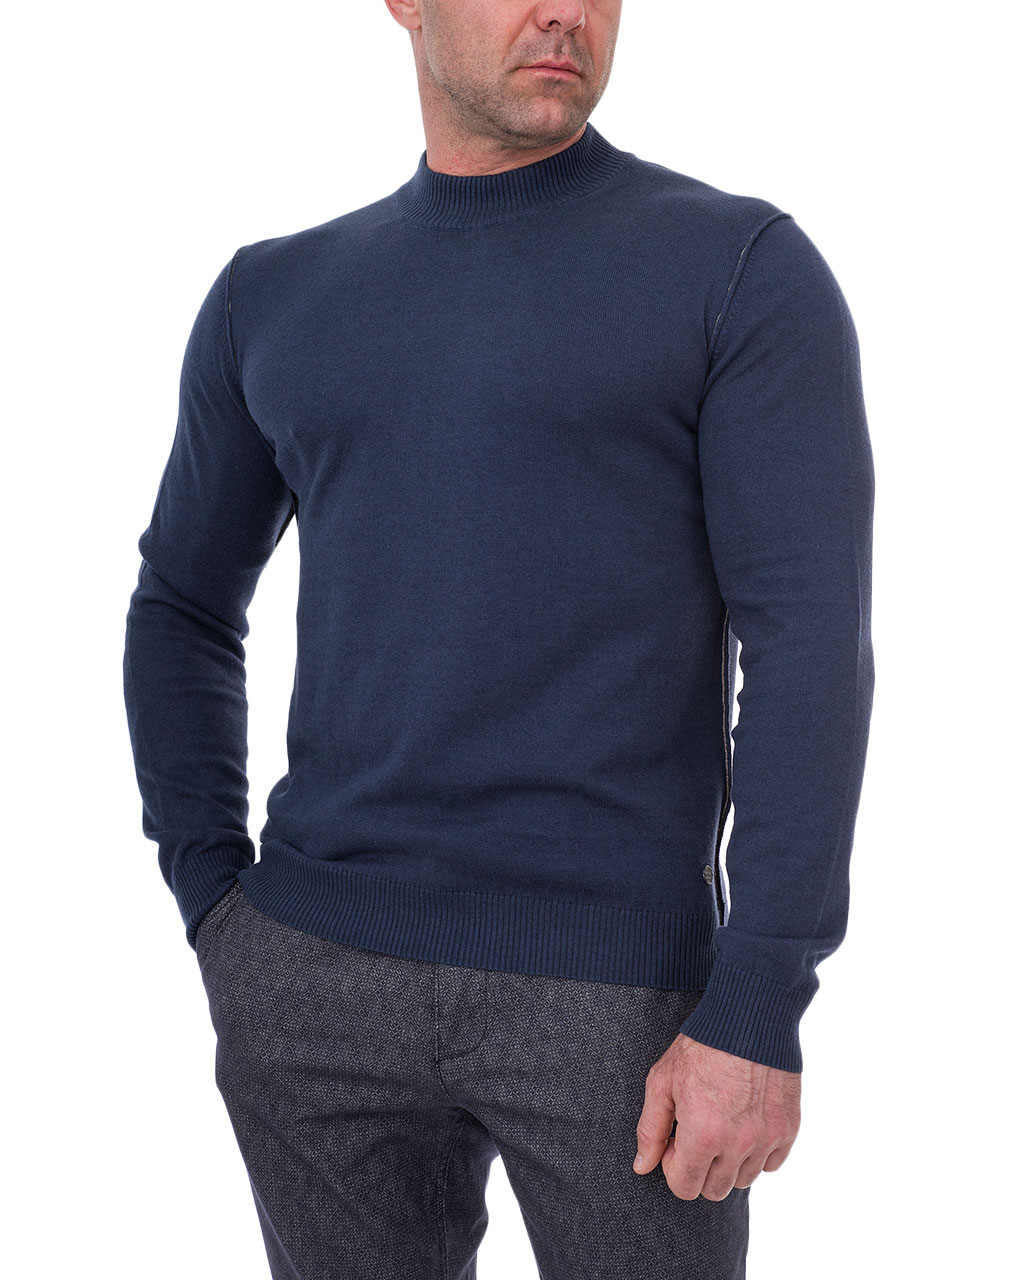 Men's jumper 75217-680-487625/7-81    (5)